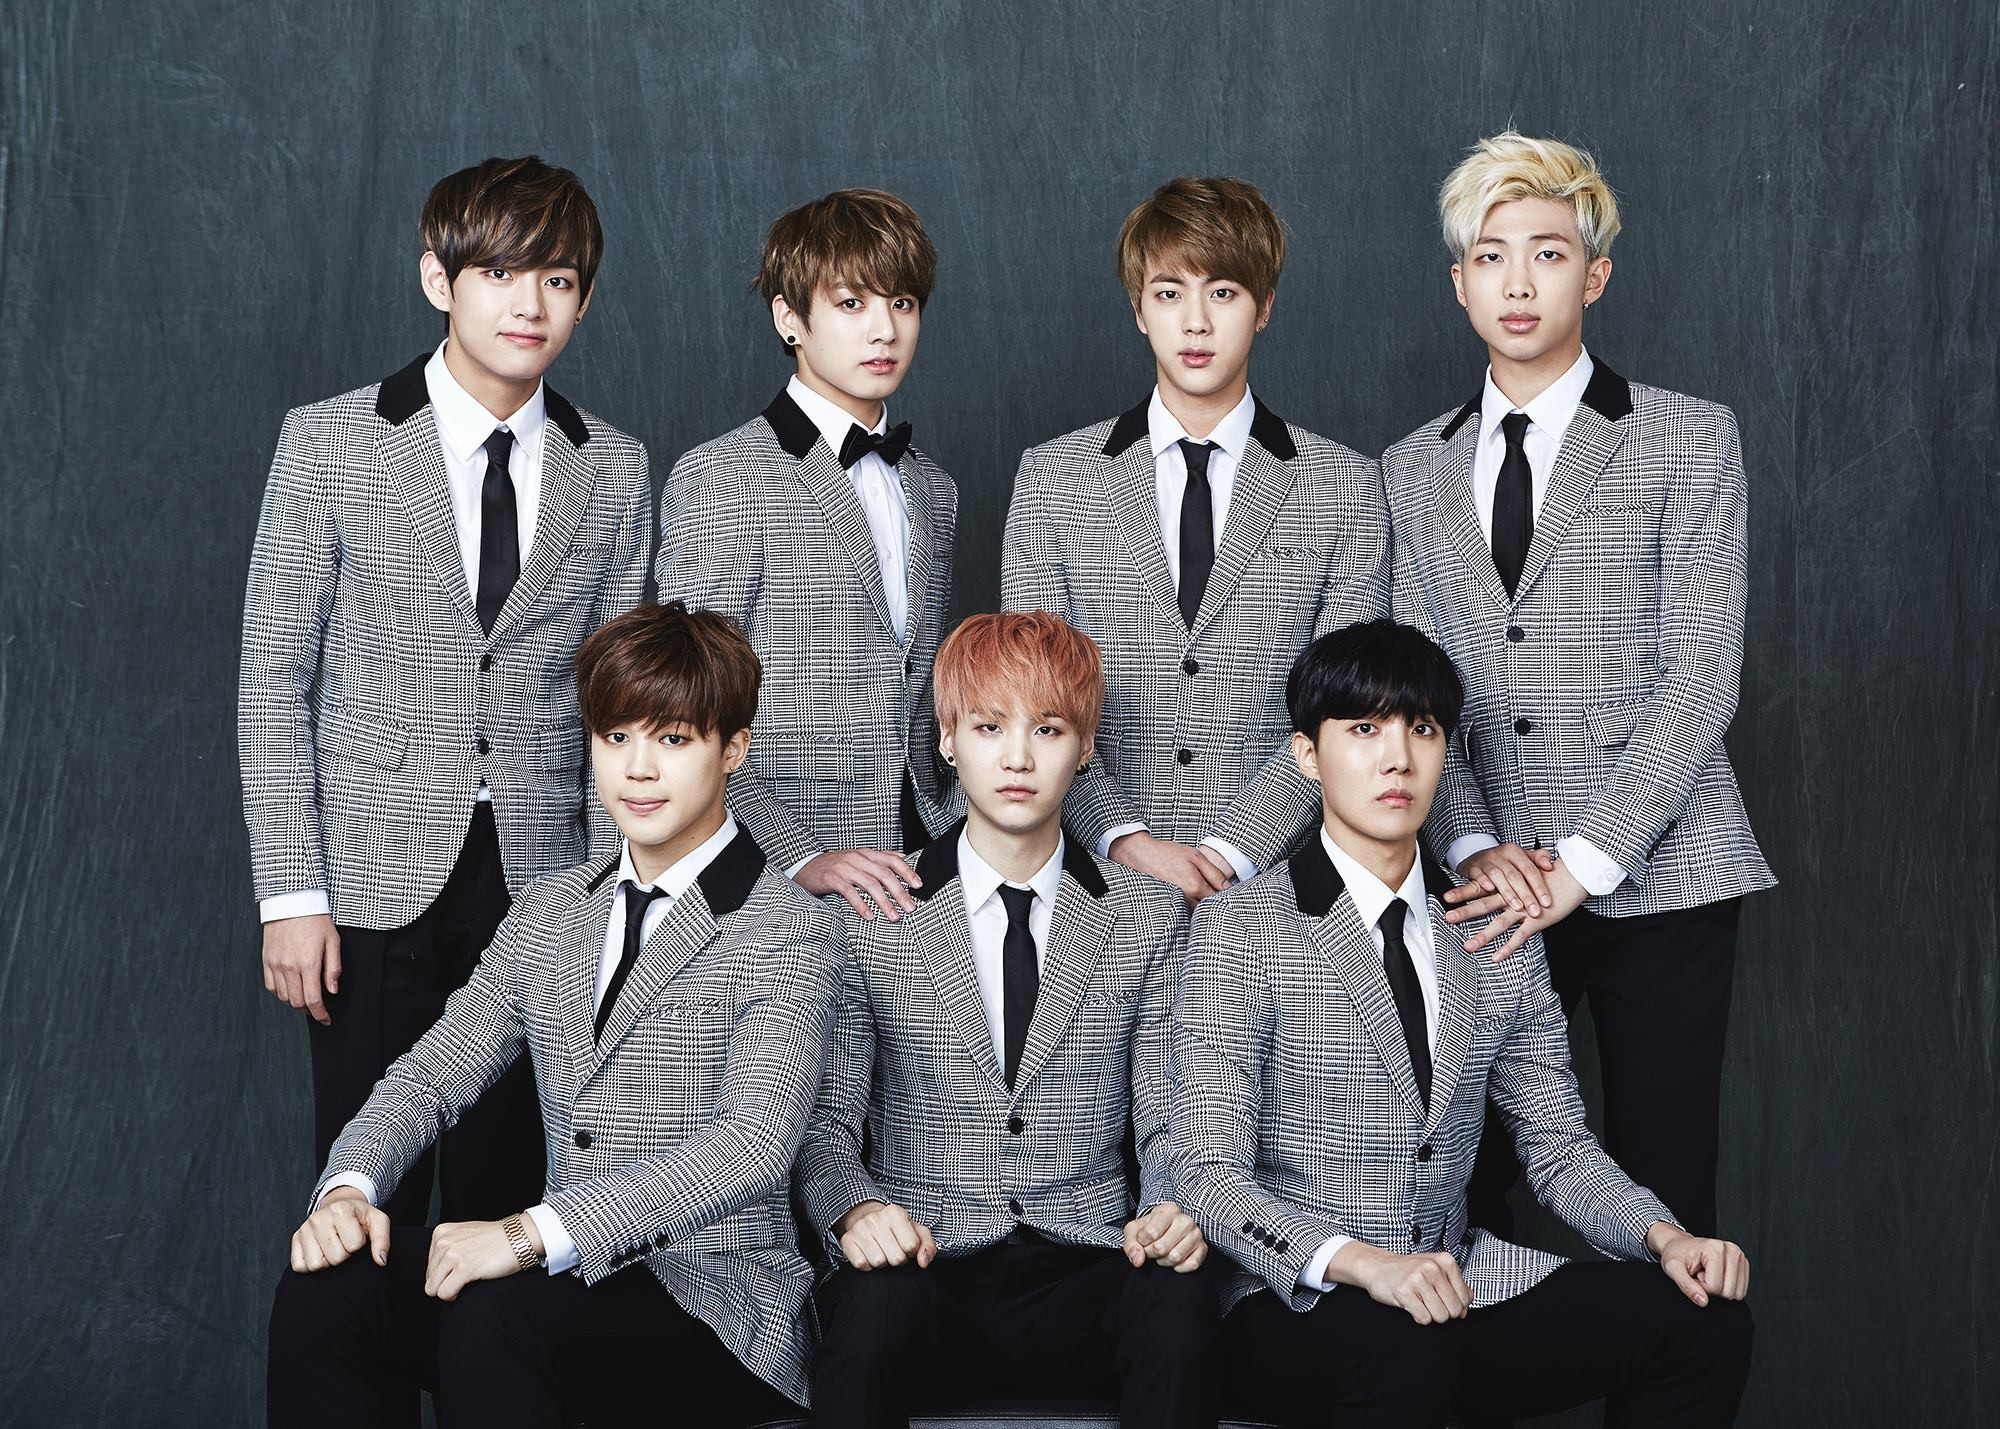 2000x1429 BTS / Bangtan Boys Wallpaper